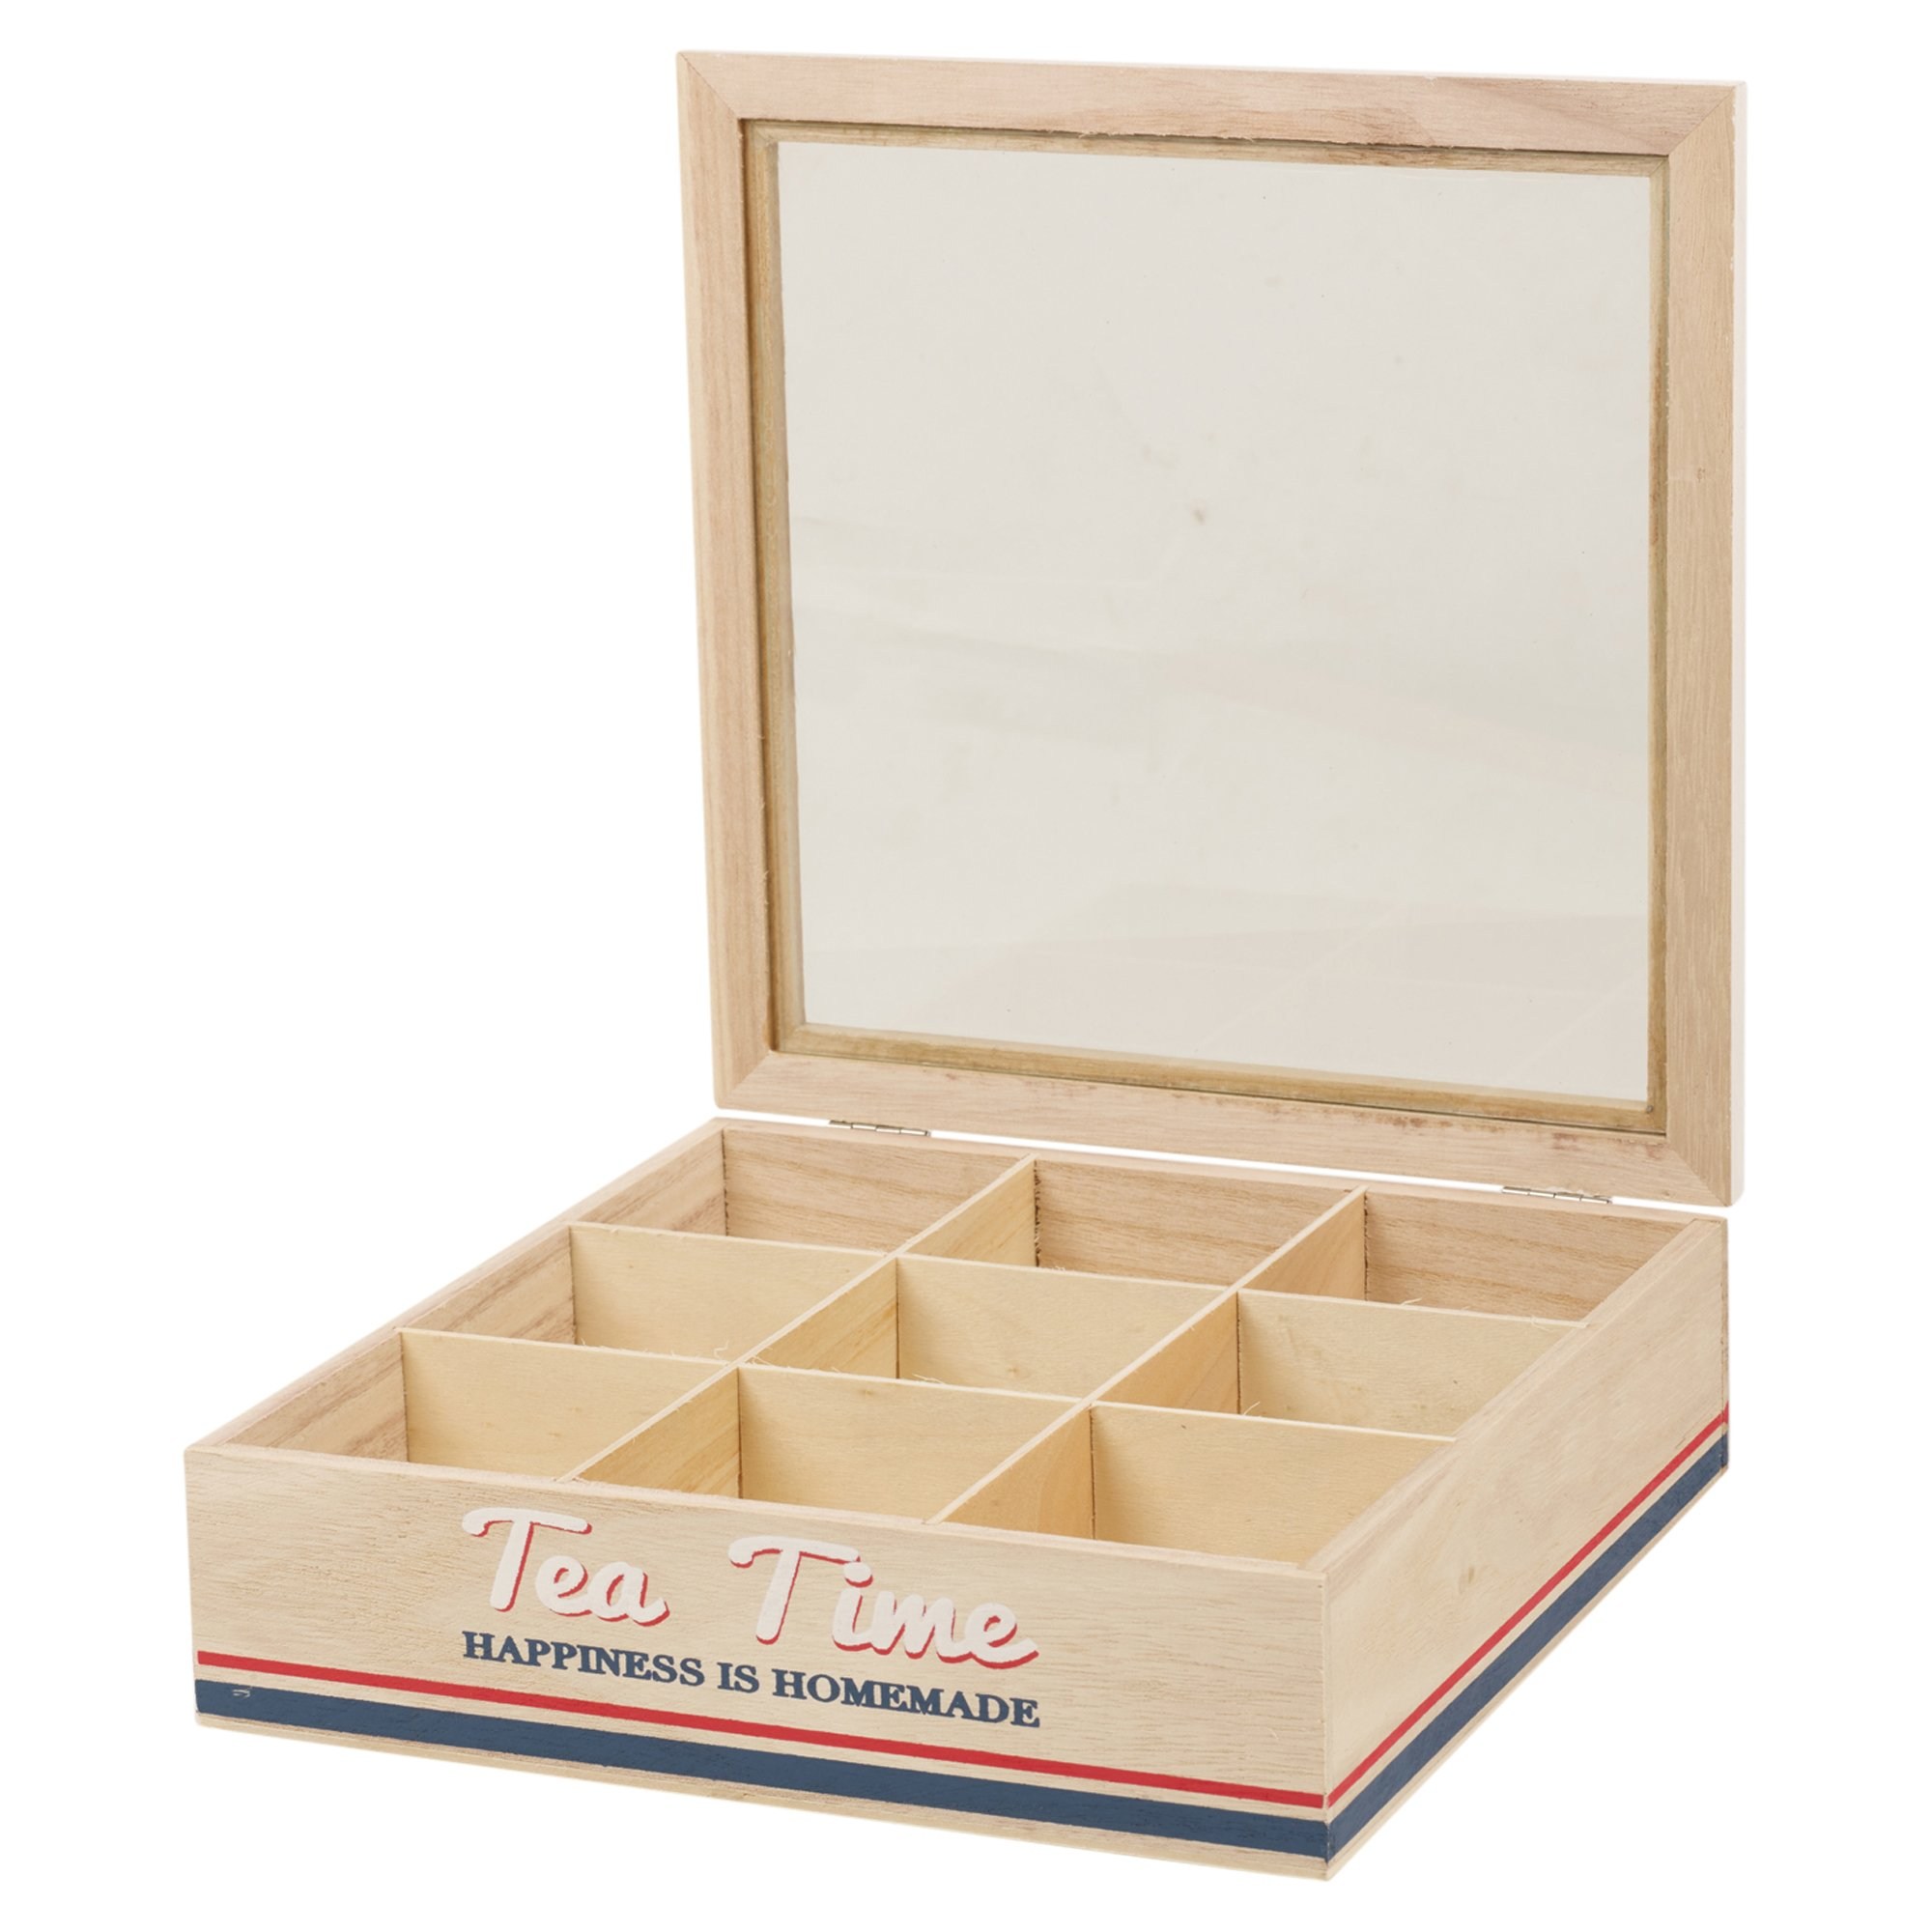 Panorama Stores Wooden Tea Box 6 Or 9 Compartments Hinged Glass Lid Home Kitchen (9 Compartments)